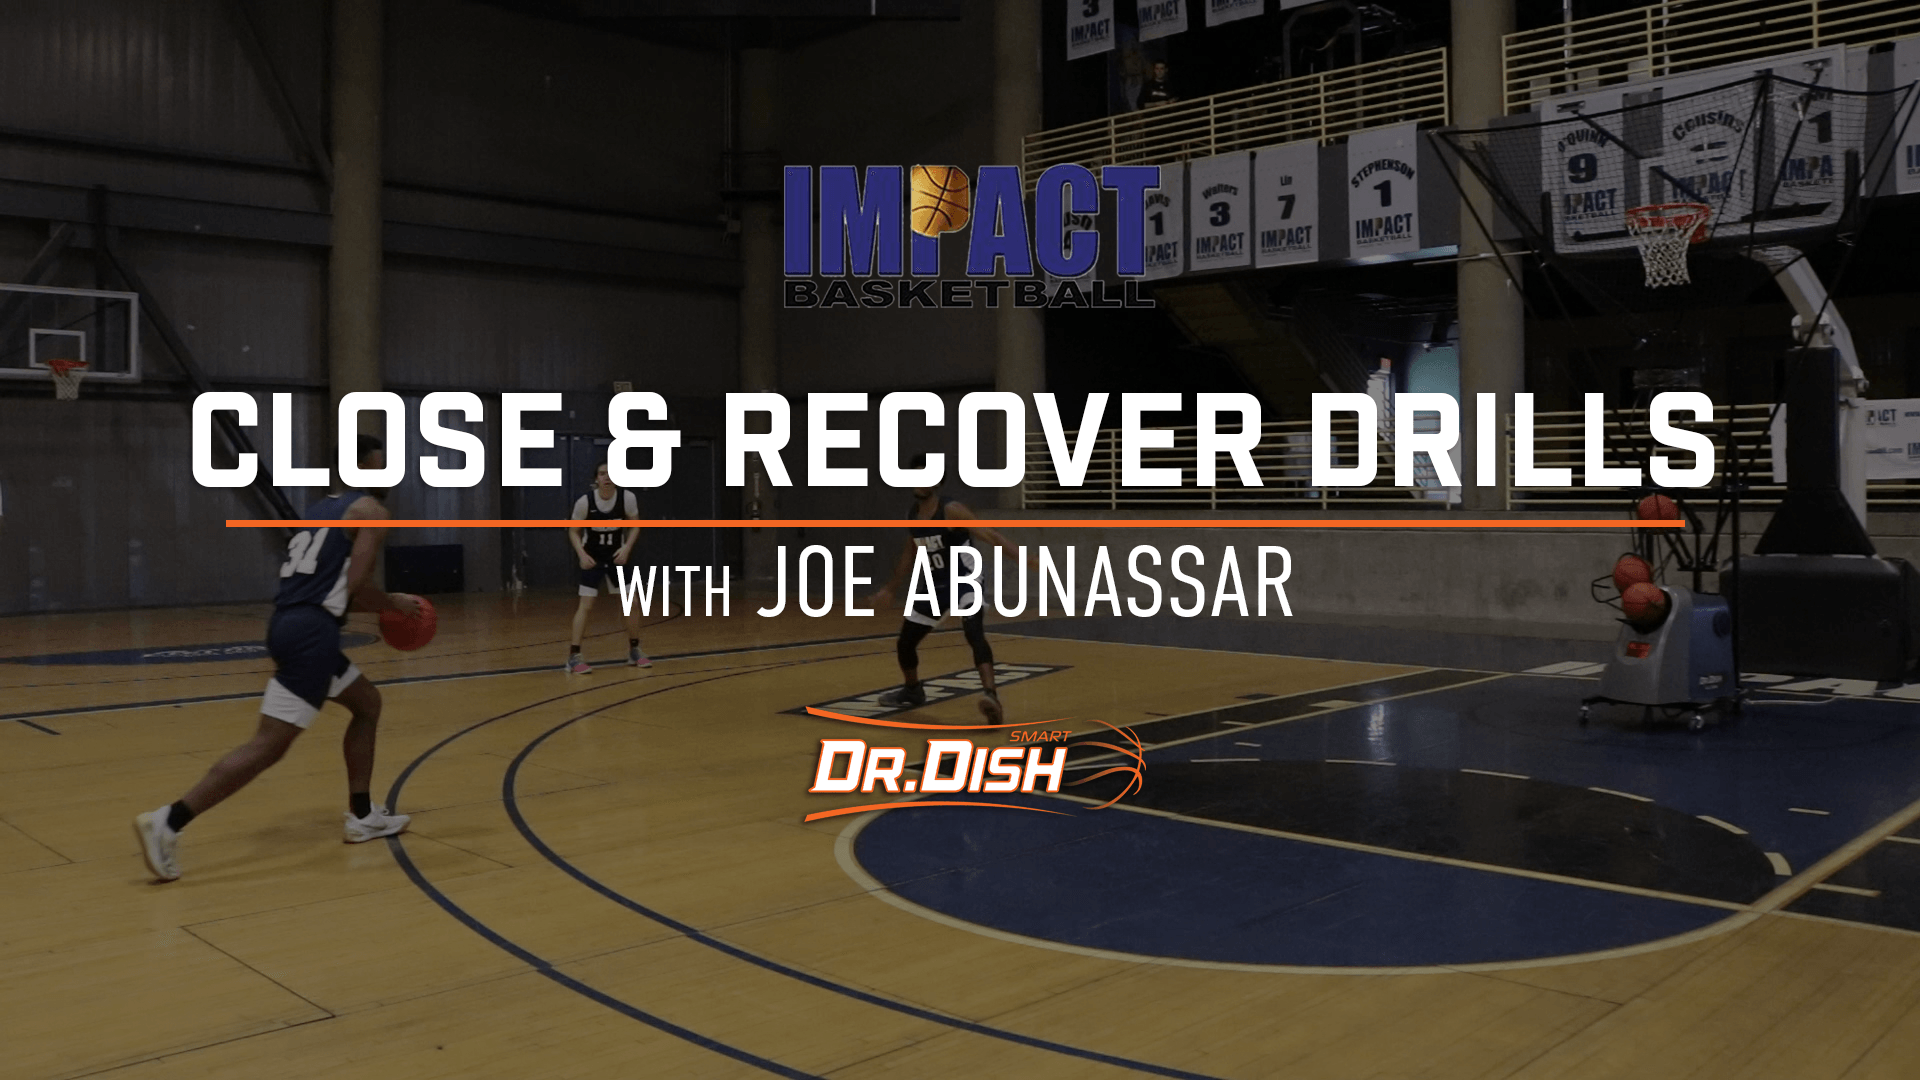 Help and Recover Drill from Joe Abunassar of Impact Basketball